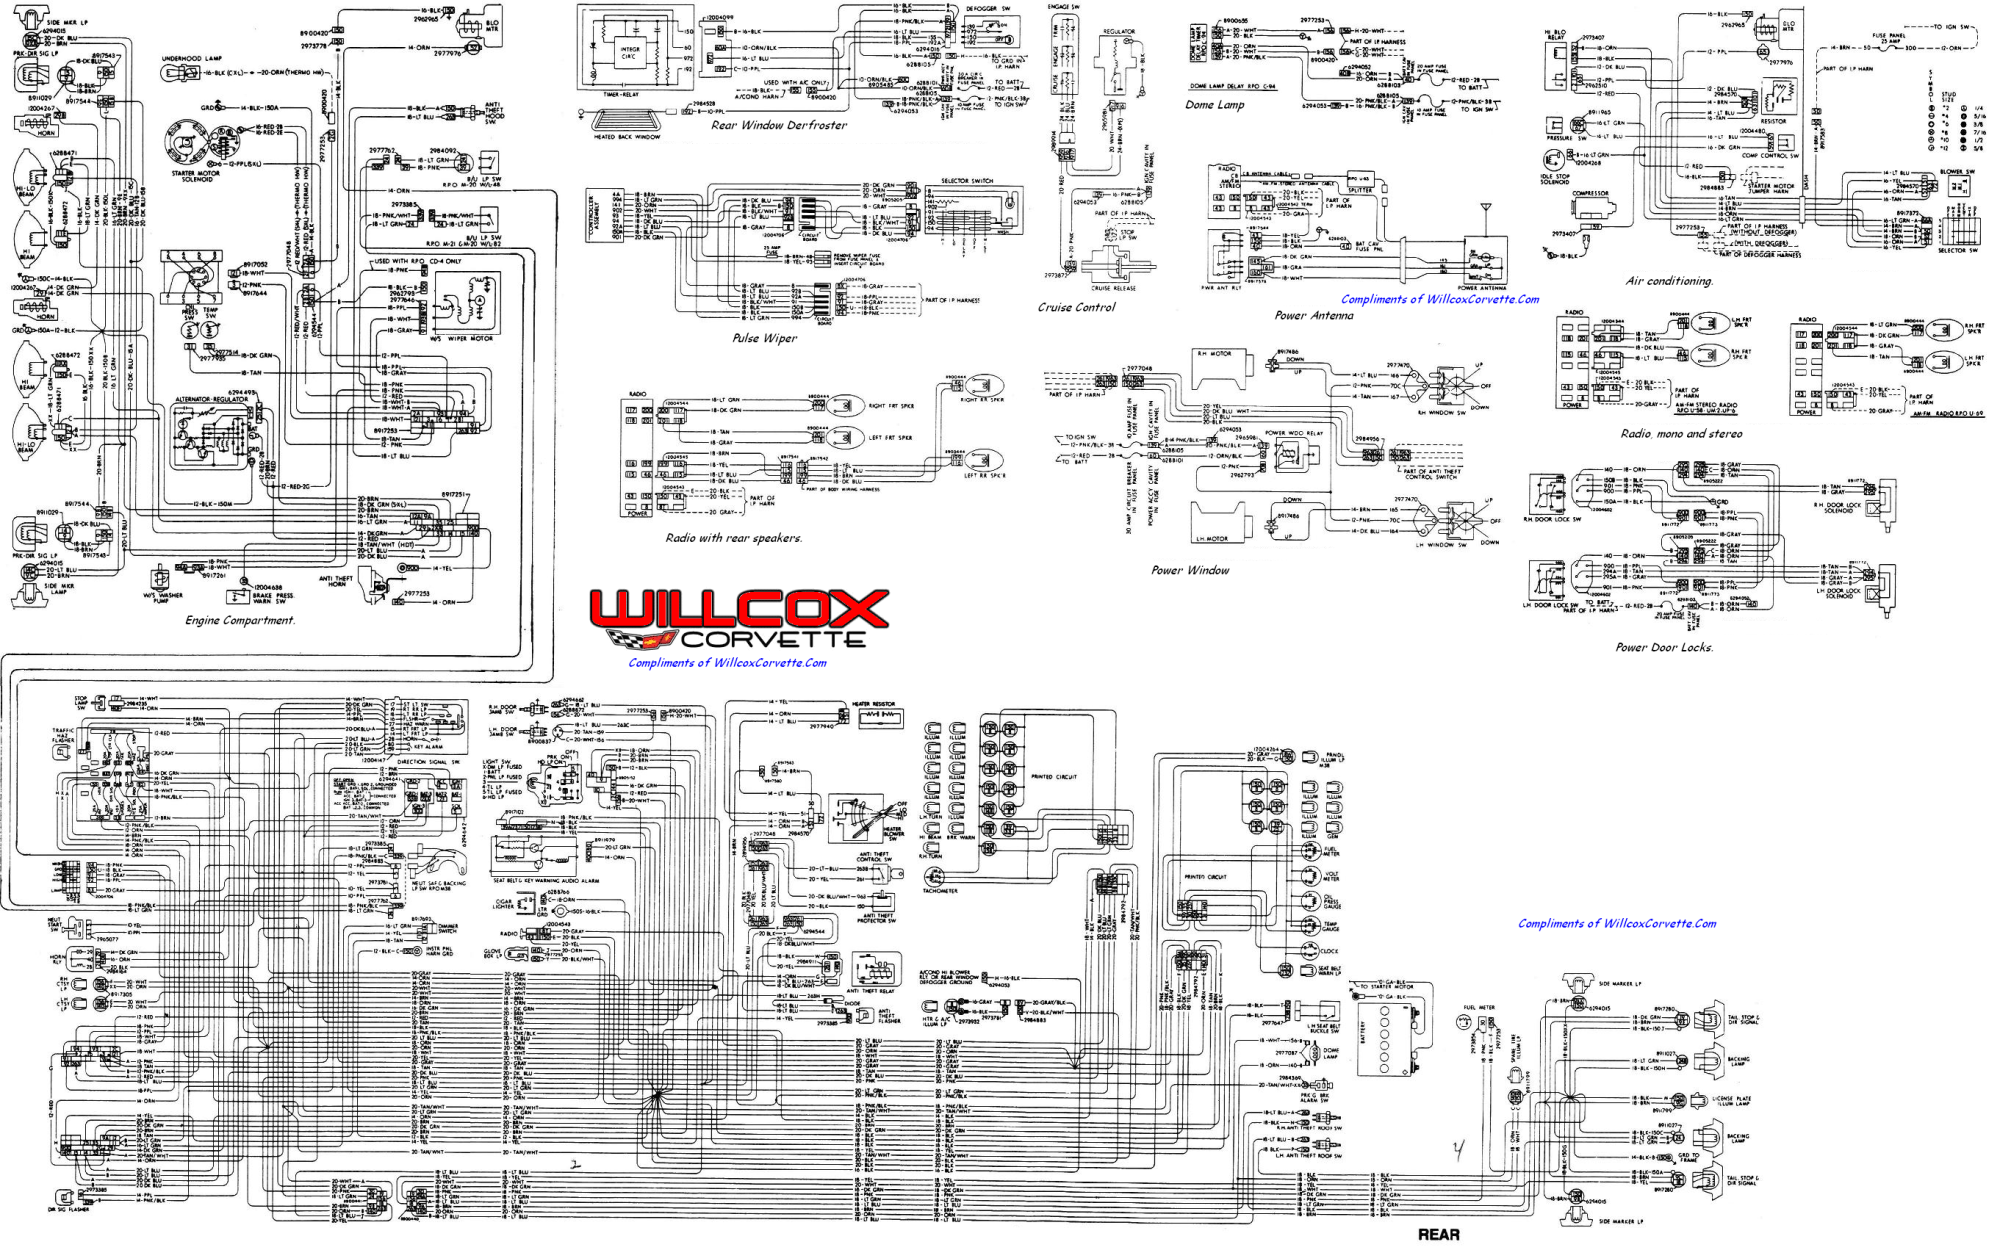 hight resolution of 1978 corvette fuse diagram wiring diagram mega1978 corvette fuse diagram wiring diagram list 1978 corvette fuse